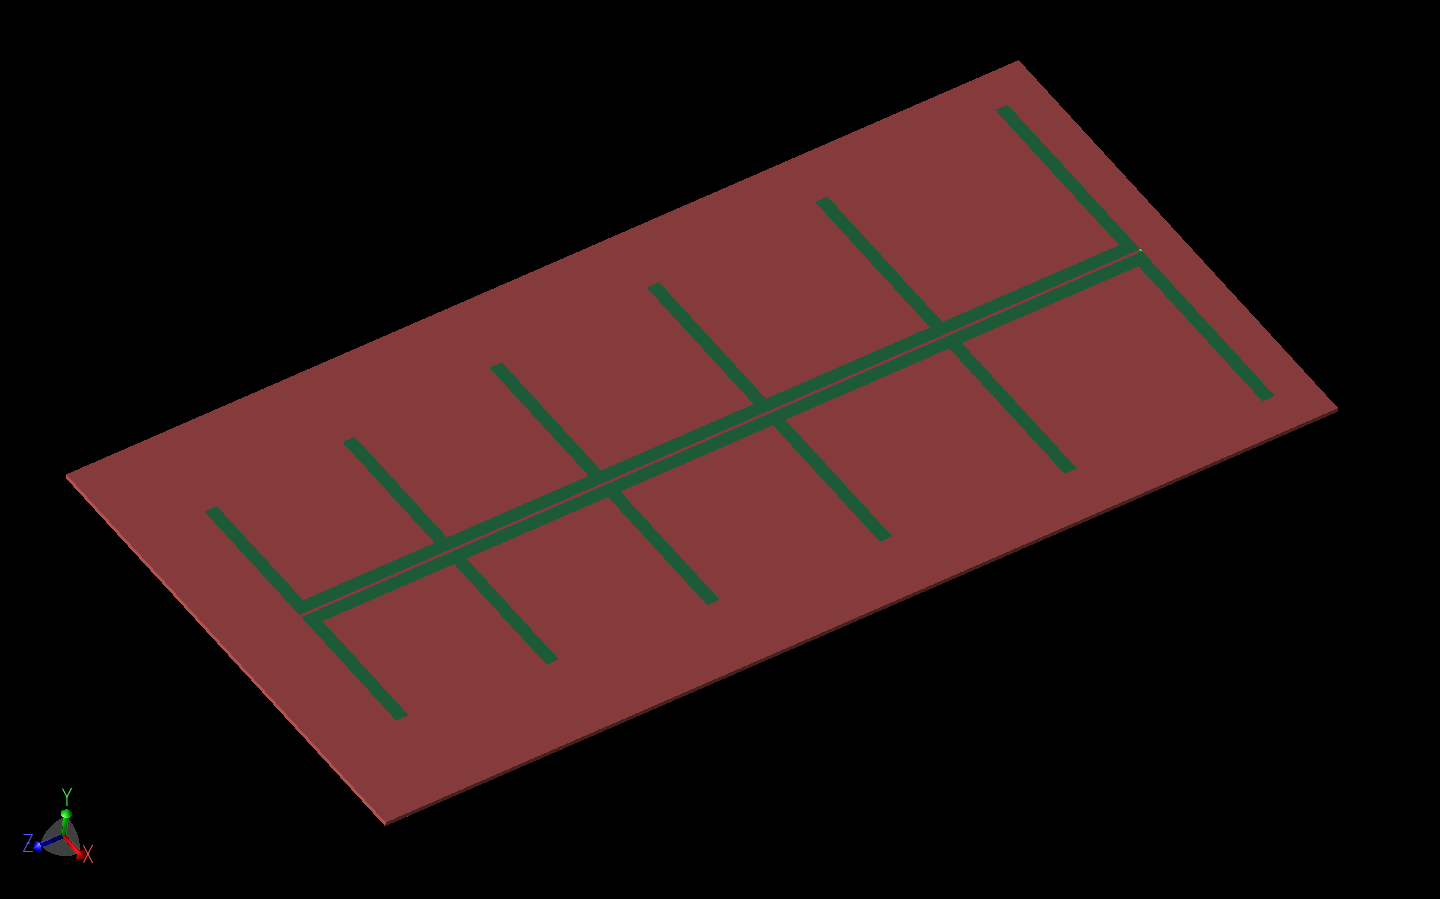 Figure 10: One of the LPDA antenna models is shown in XFdtd.